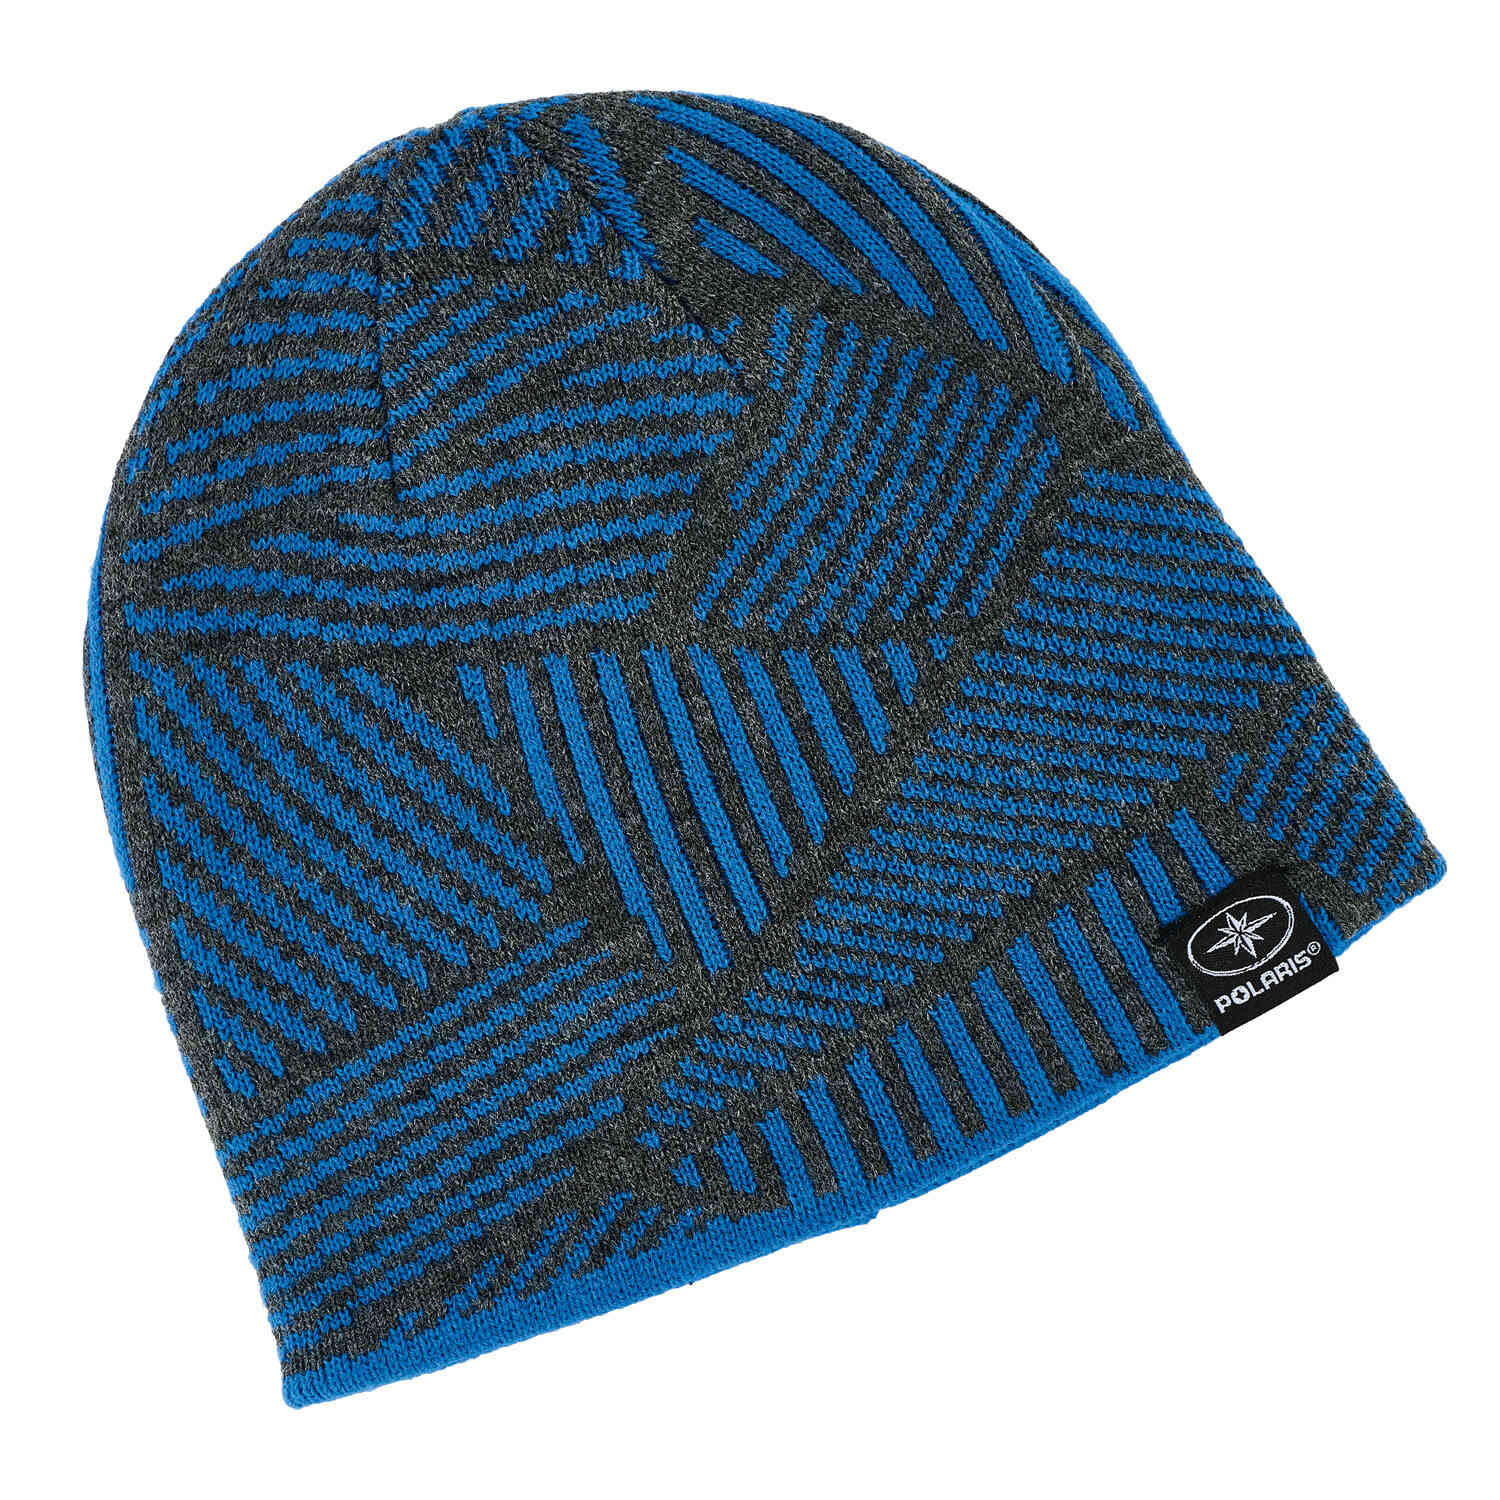 Youth Jersey Knit Reversible Beanie, Blue